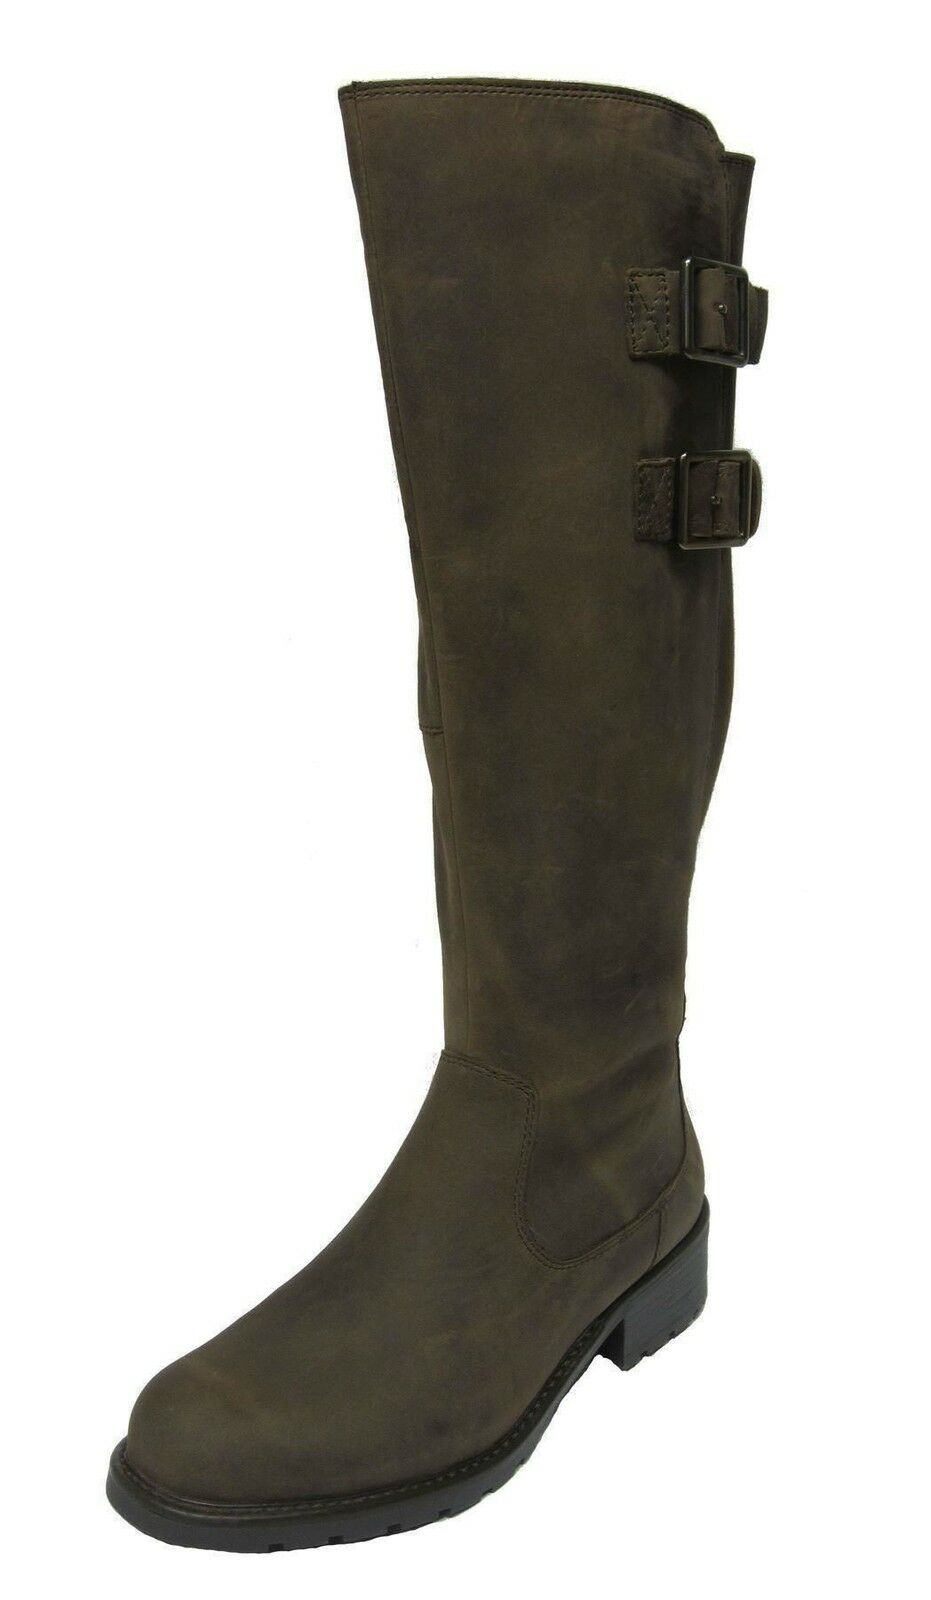 Clarks Orinoco Tango Black Or Khaki Leather Casual Long Boots D Fitting